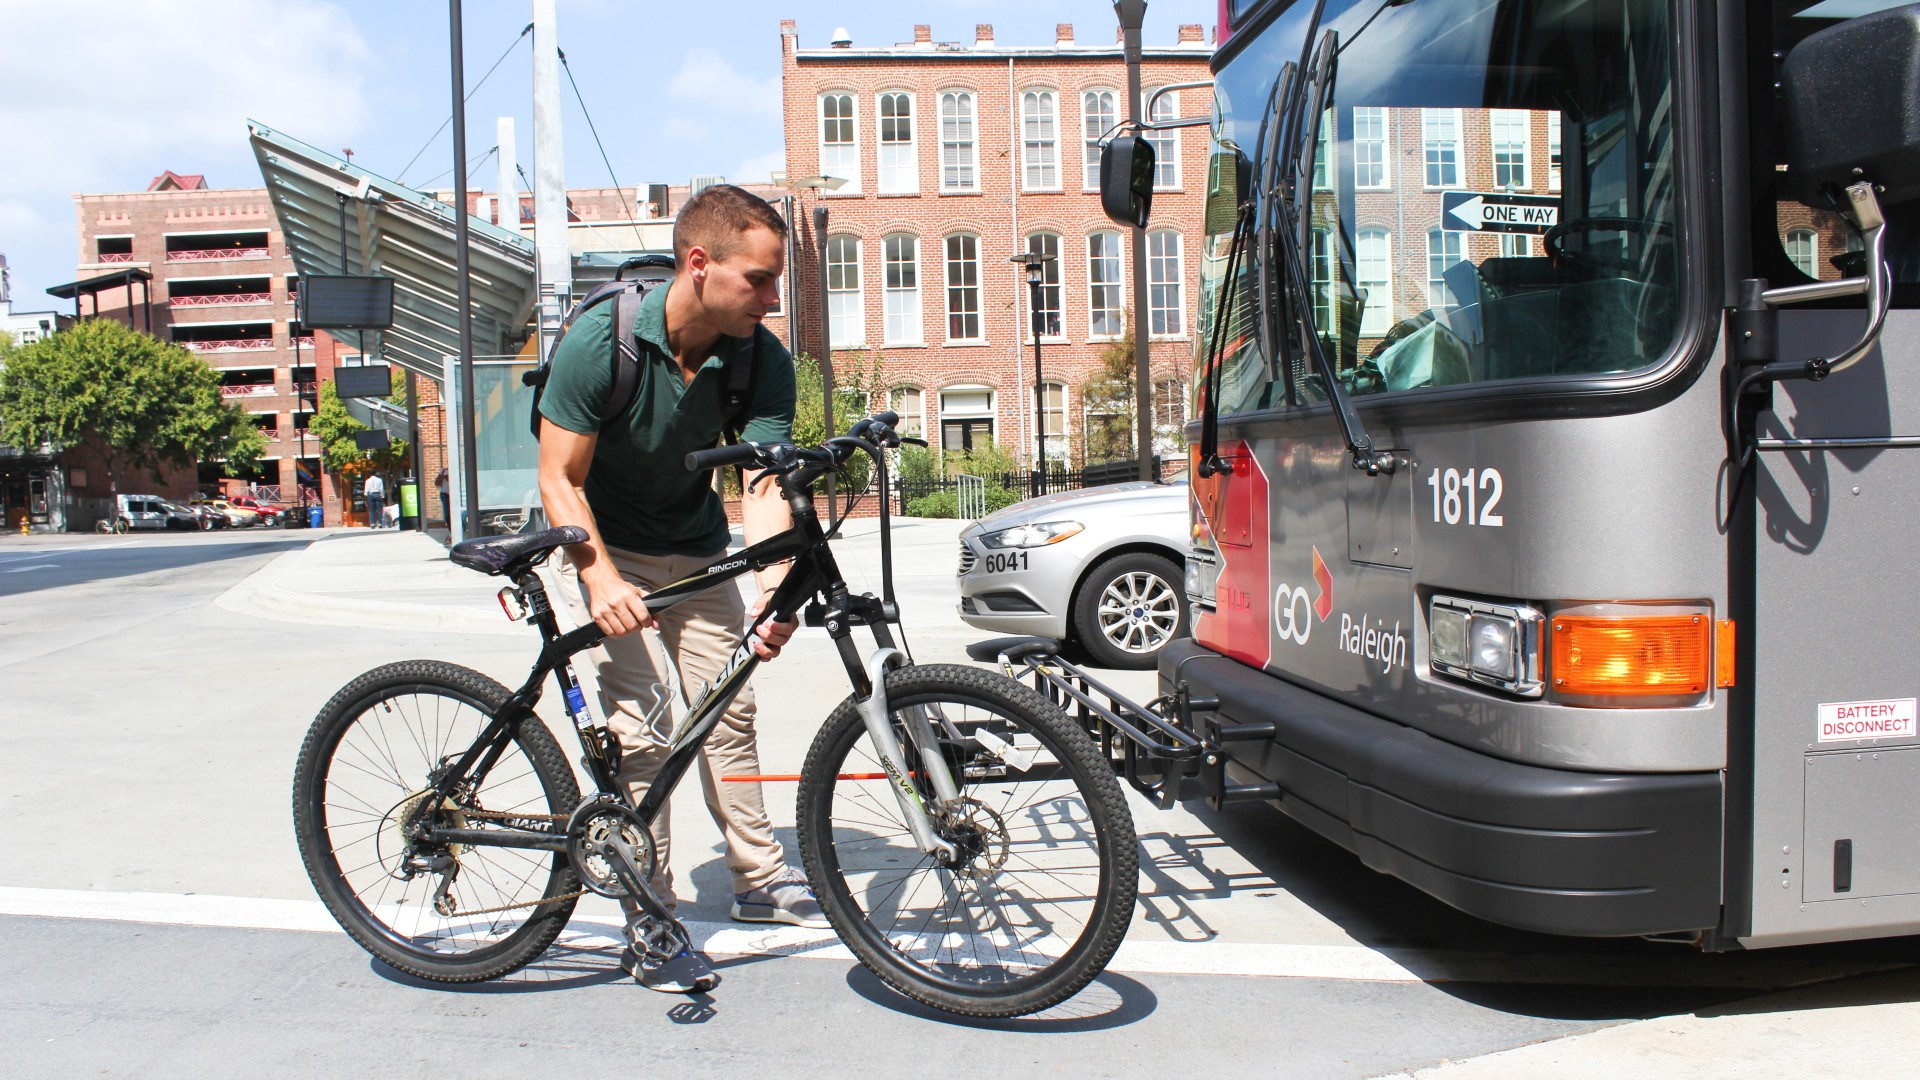 Man getting ready to load bike on bus rack